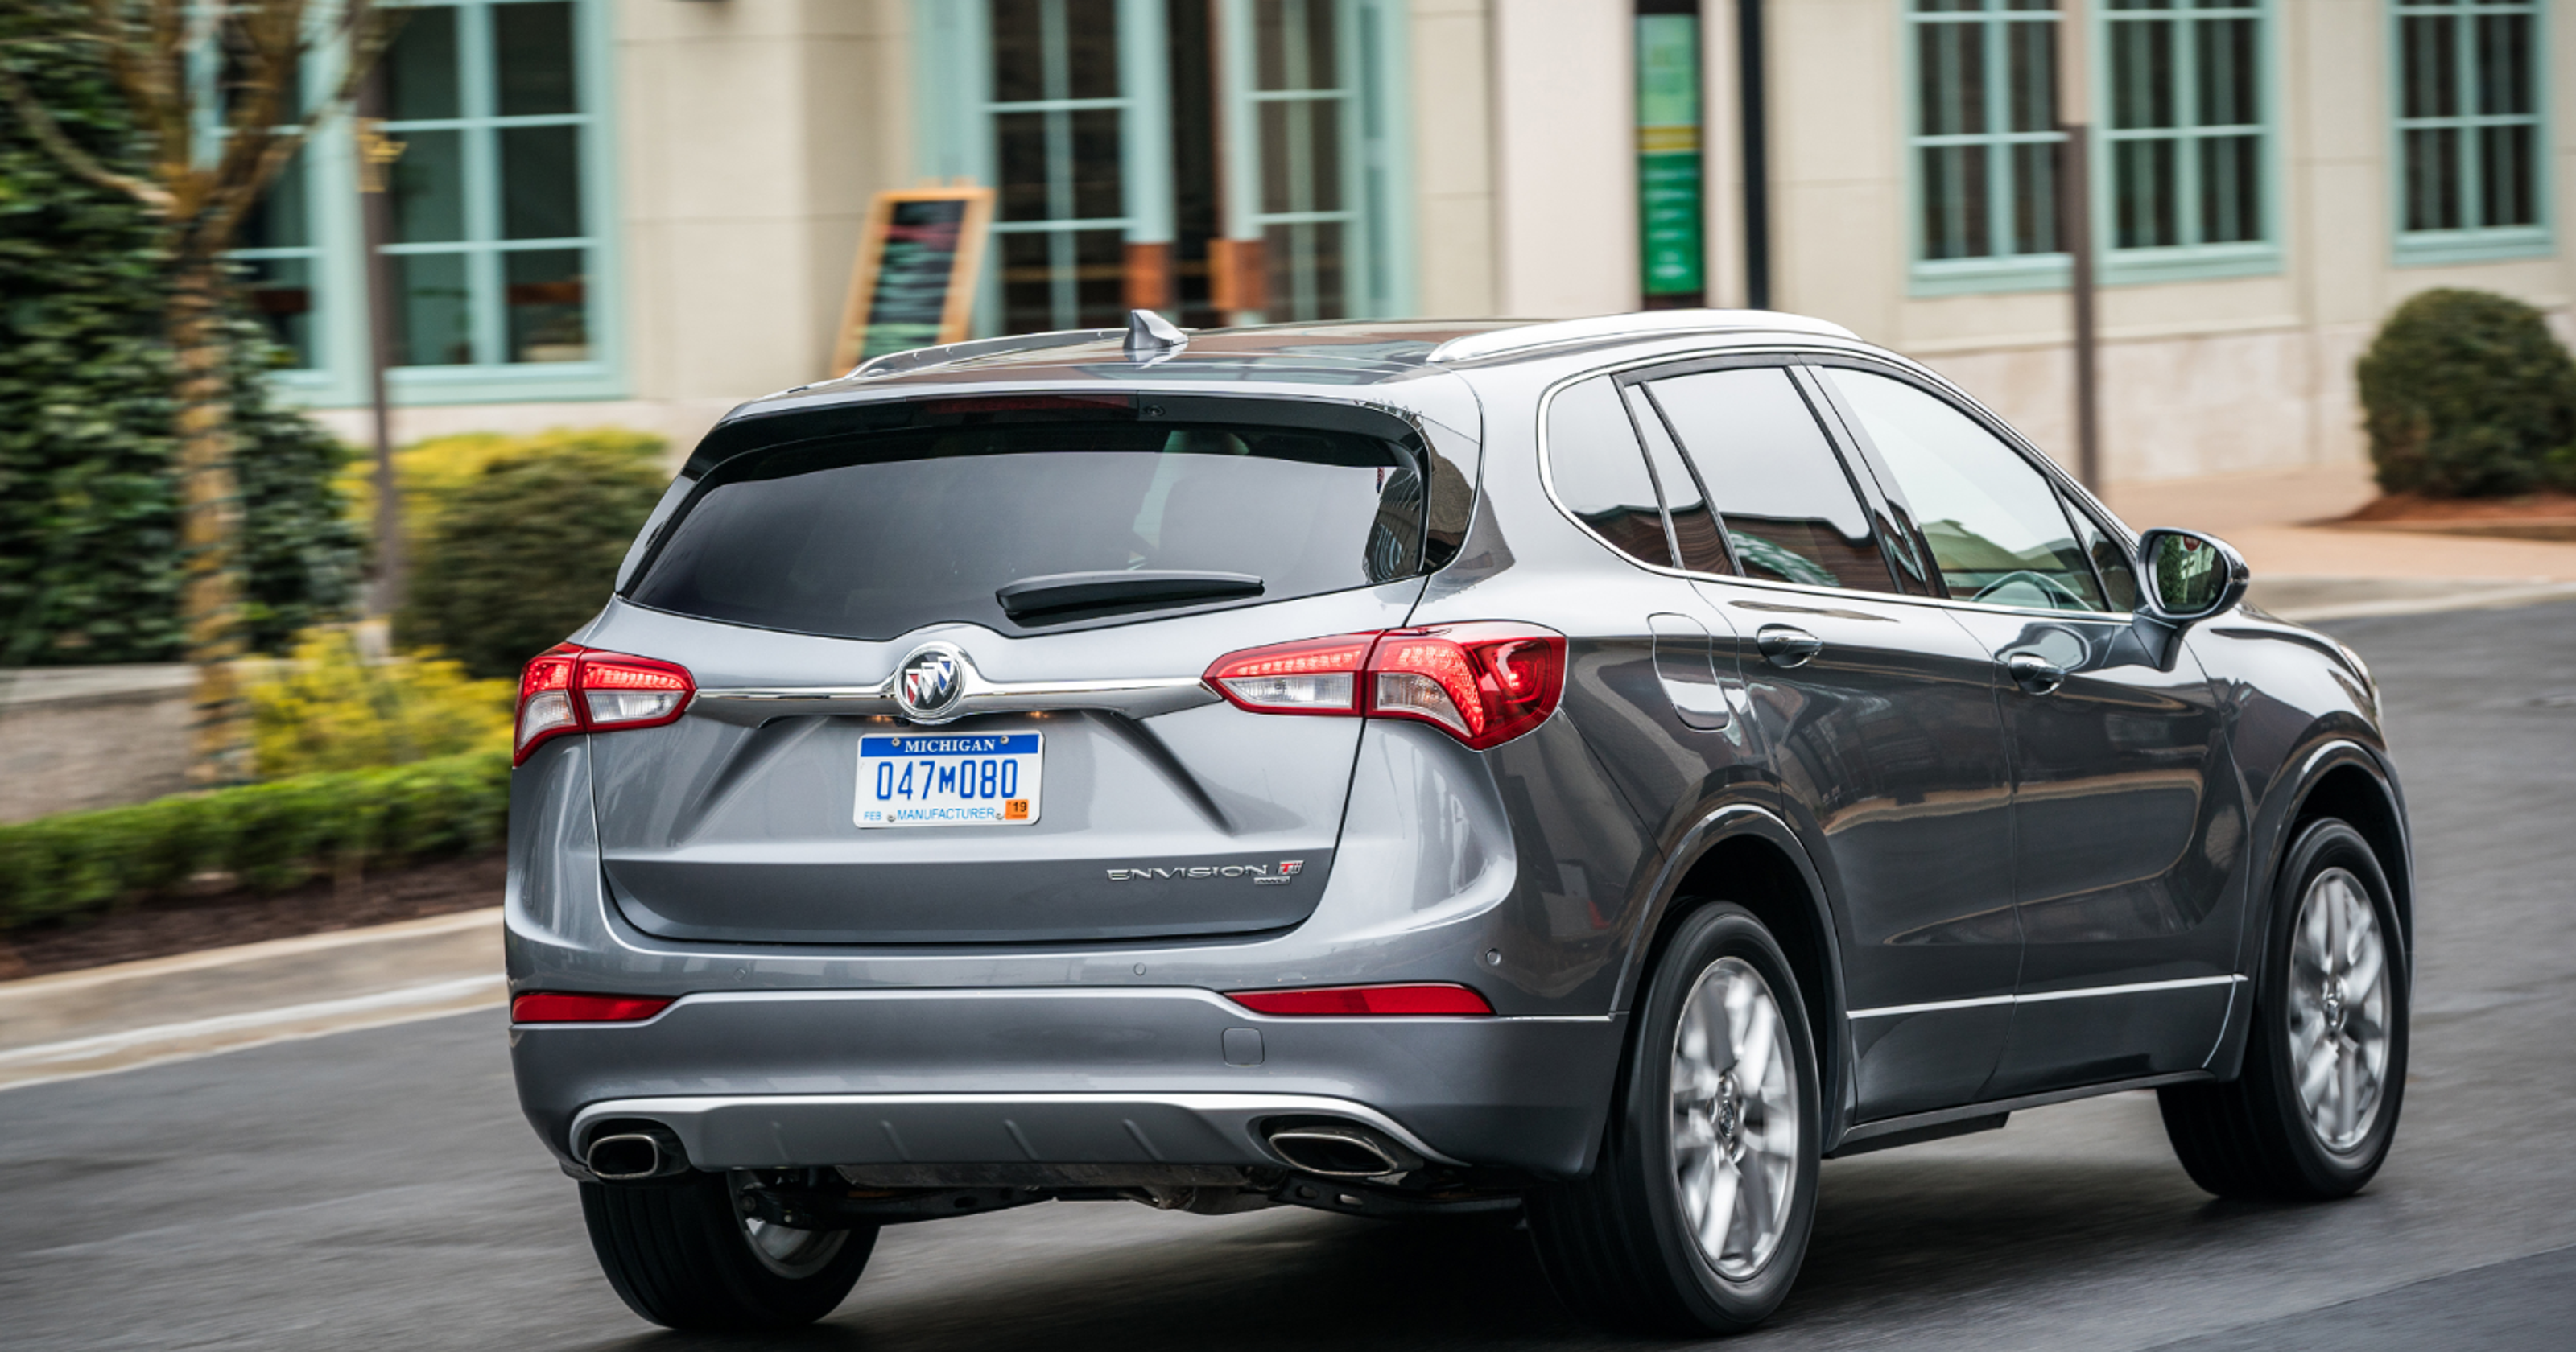 Buick Removes Brand Name From Vehicles For 19